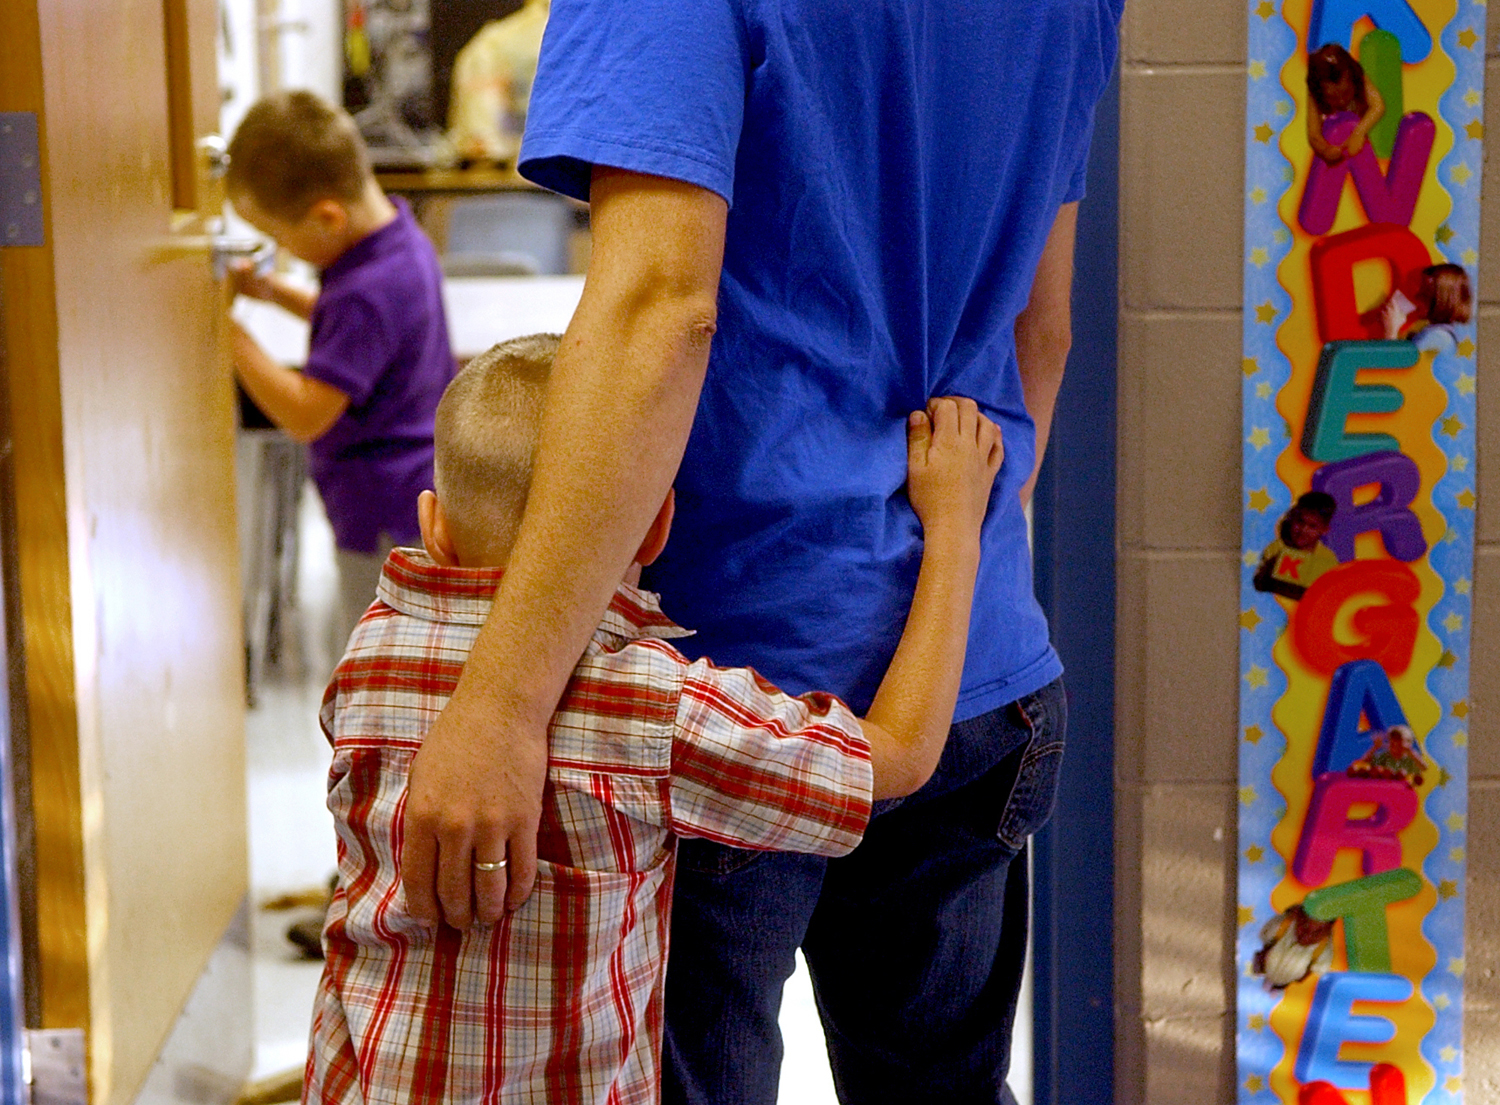 A boy holds on to his father as he is dropped off for the first day of Kindergarten.